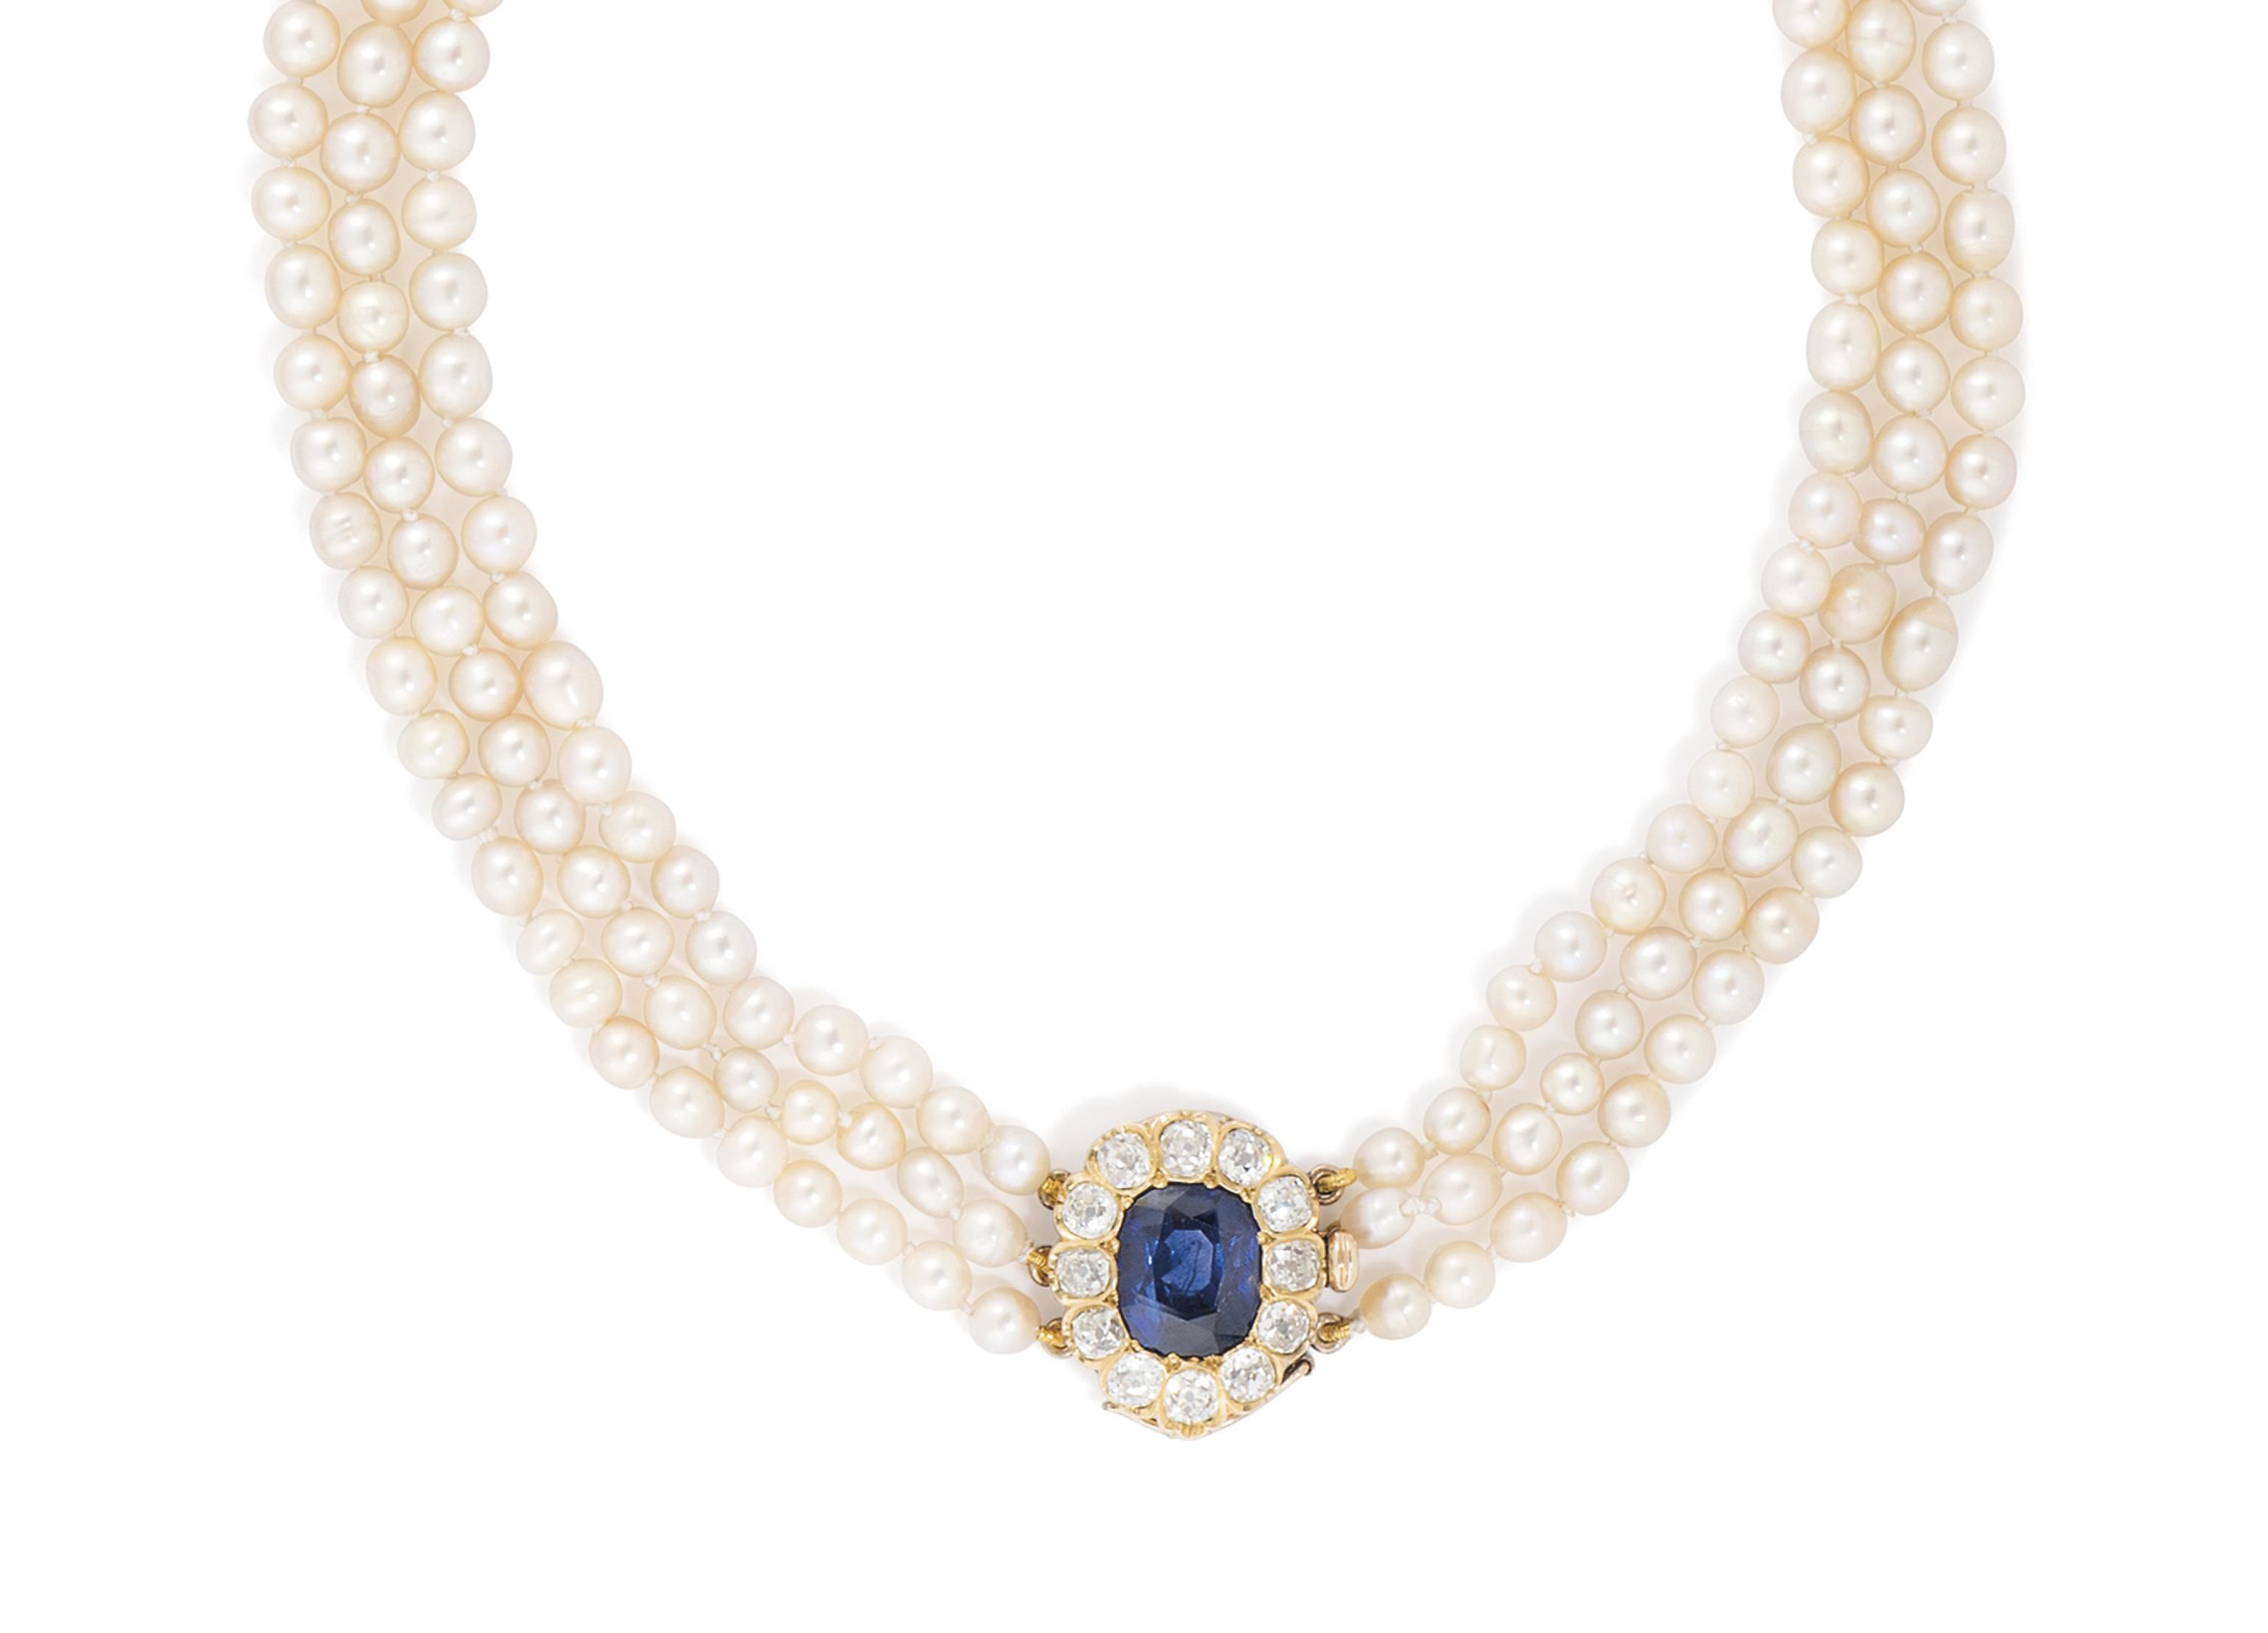 Seed pearl necklace raw ruby necklace Raw sapphire necklace Gold